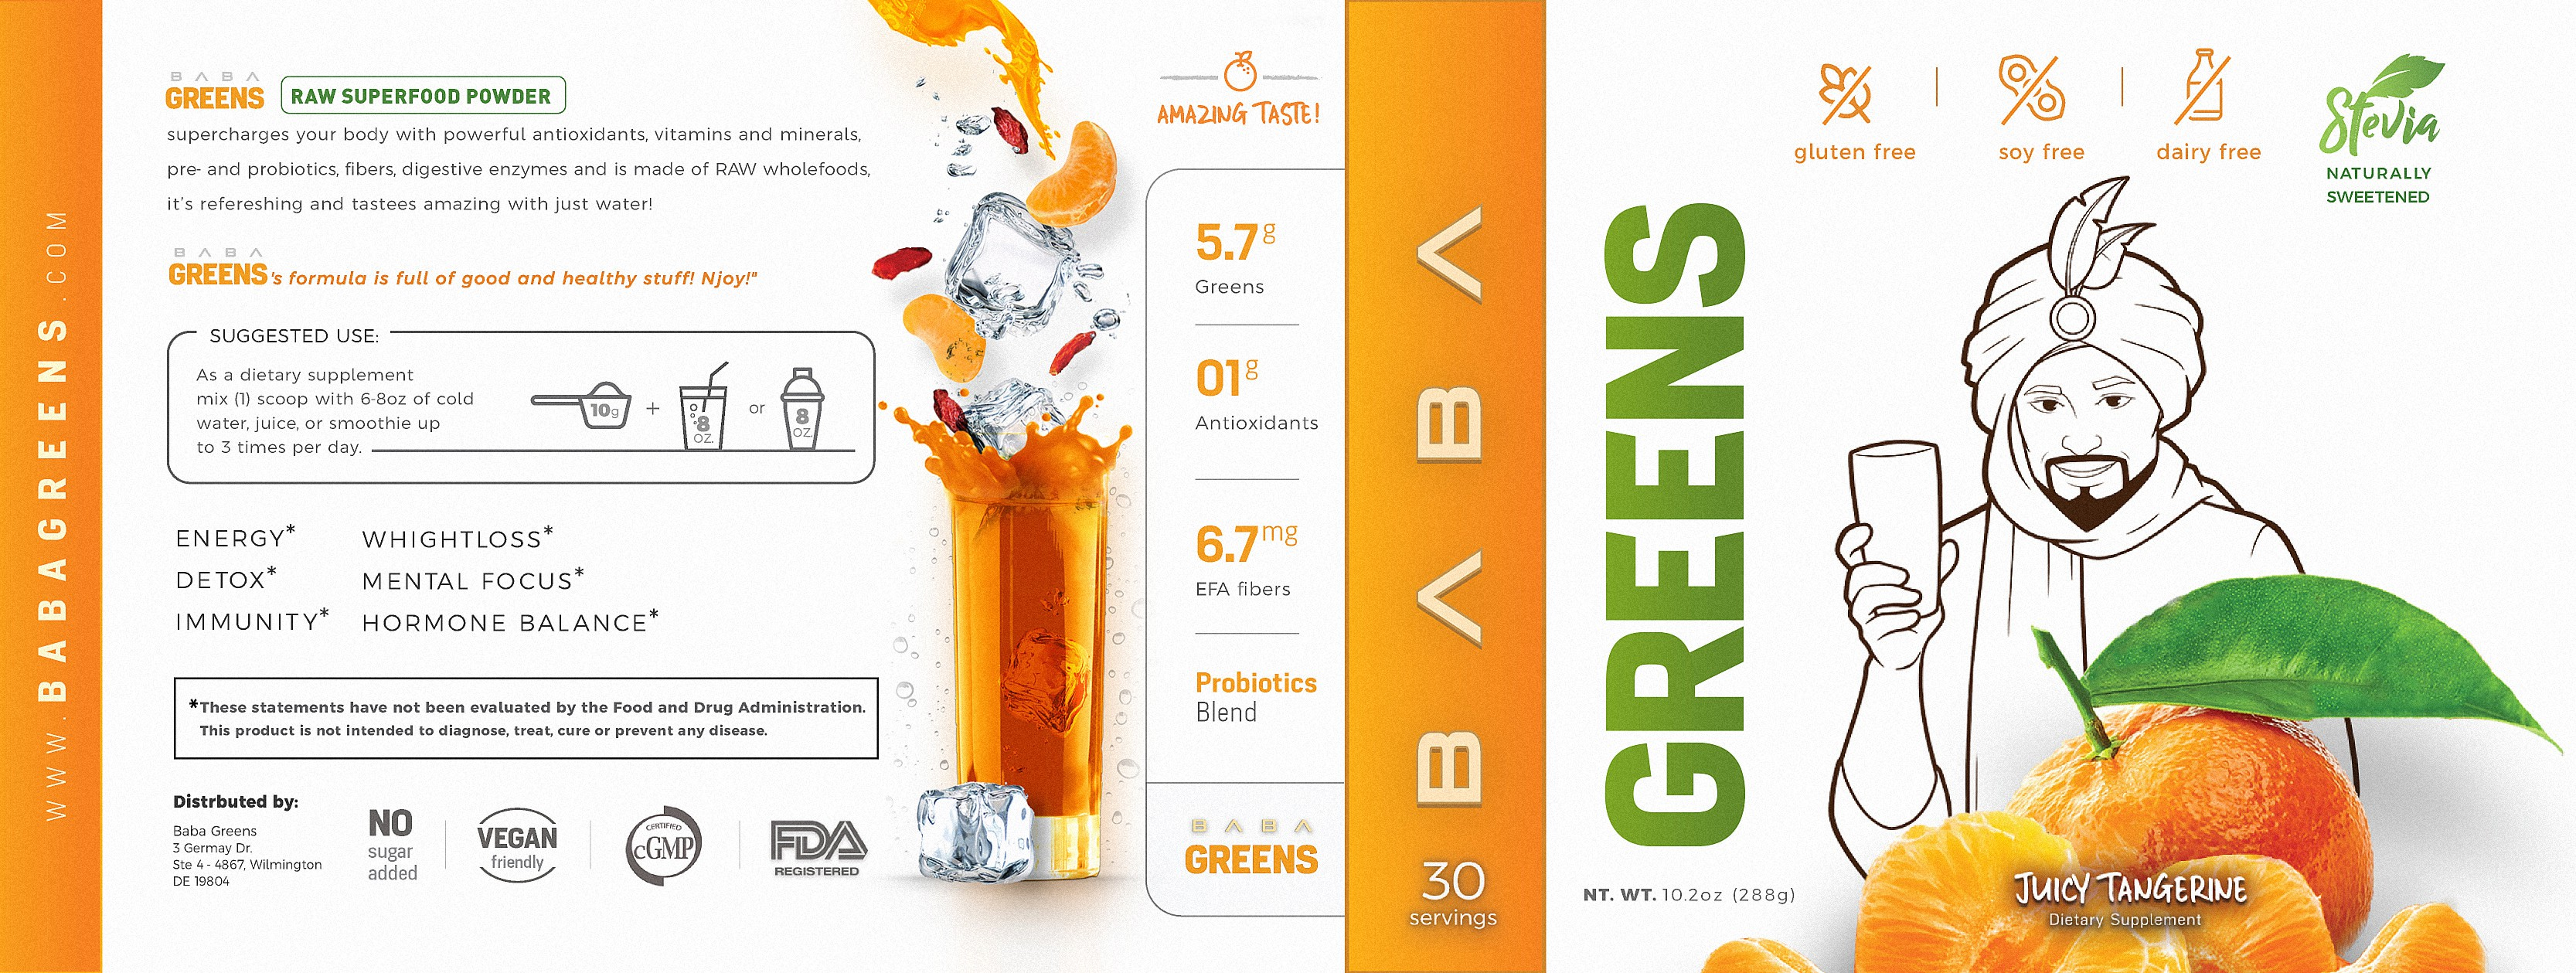 Product label design for a greens (superfood) supplement with 2 flavors